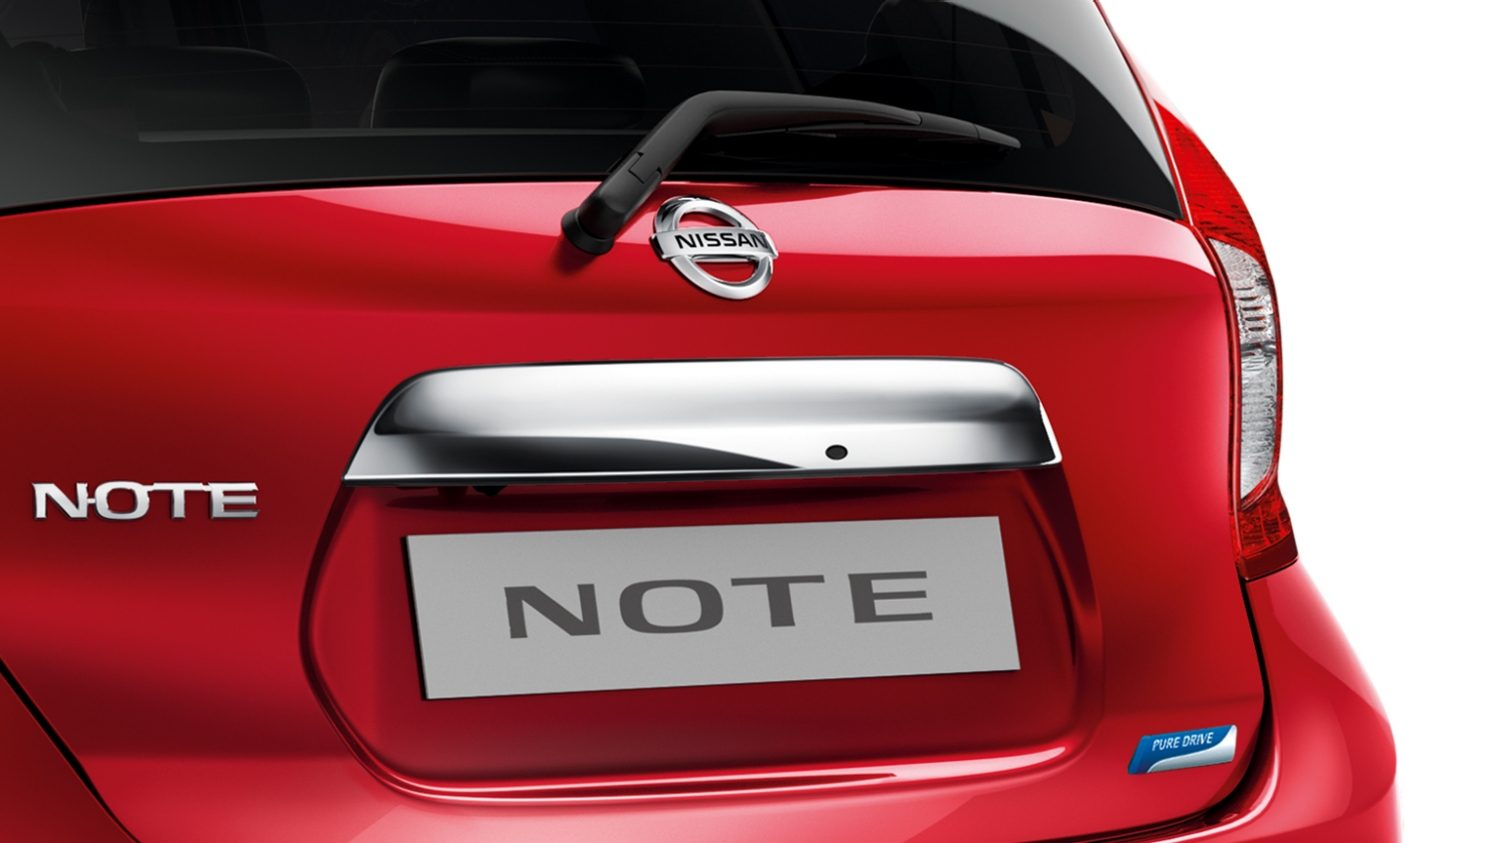 Nissan Note - Nissan design studio - Beijing chrome trunk handle cover